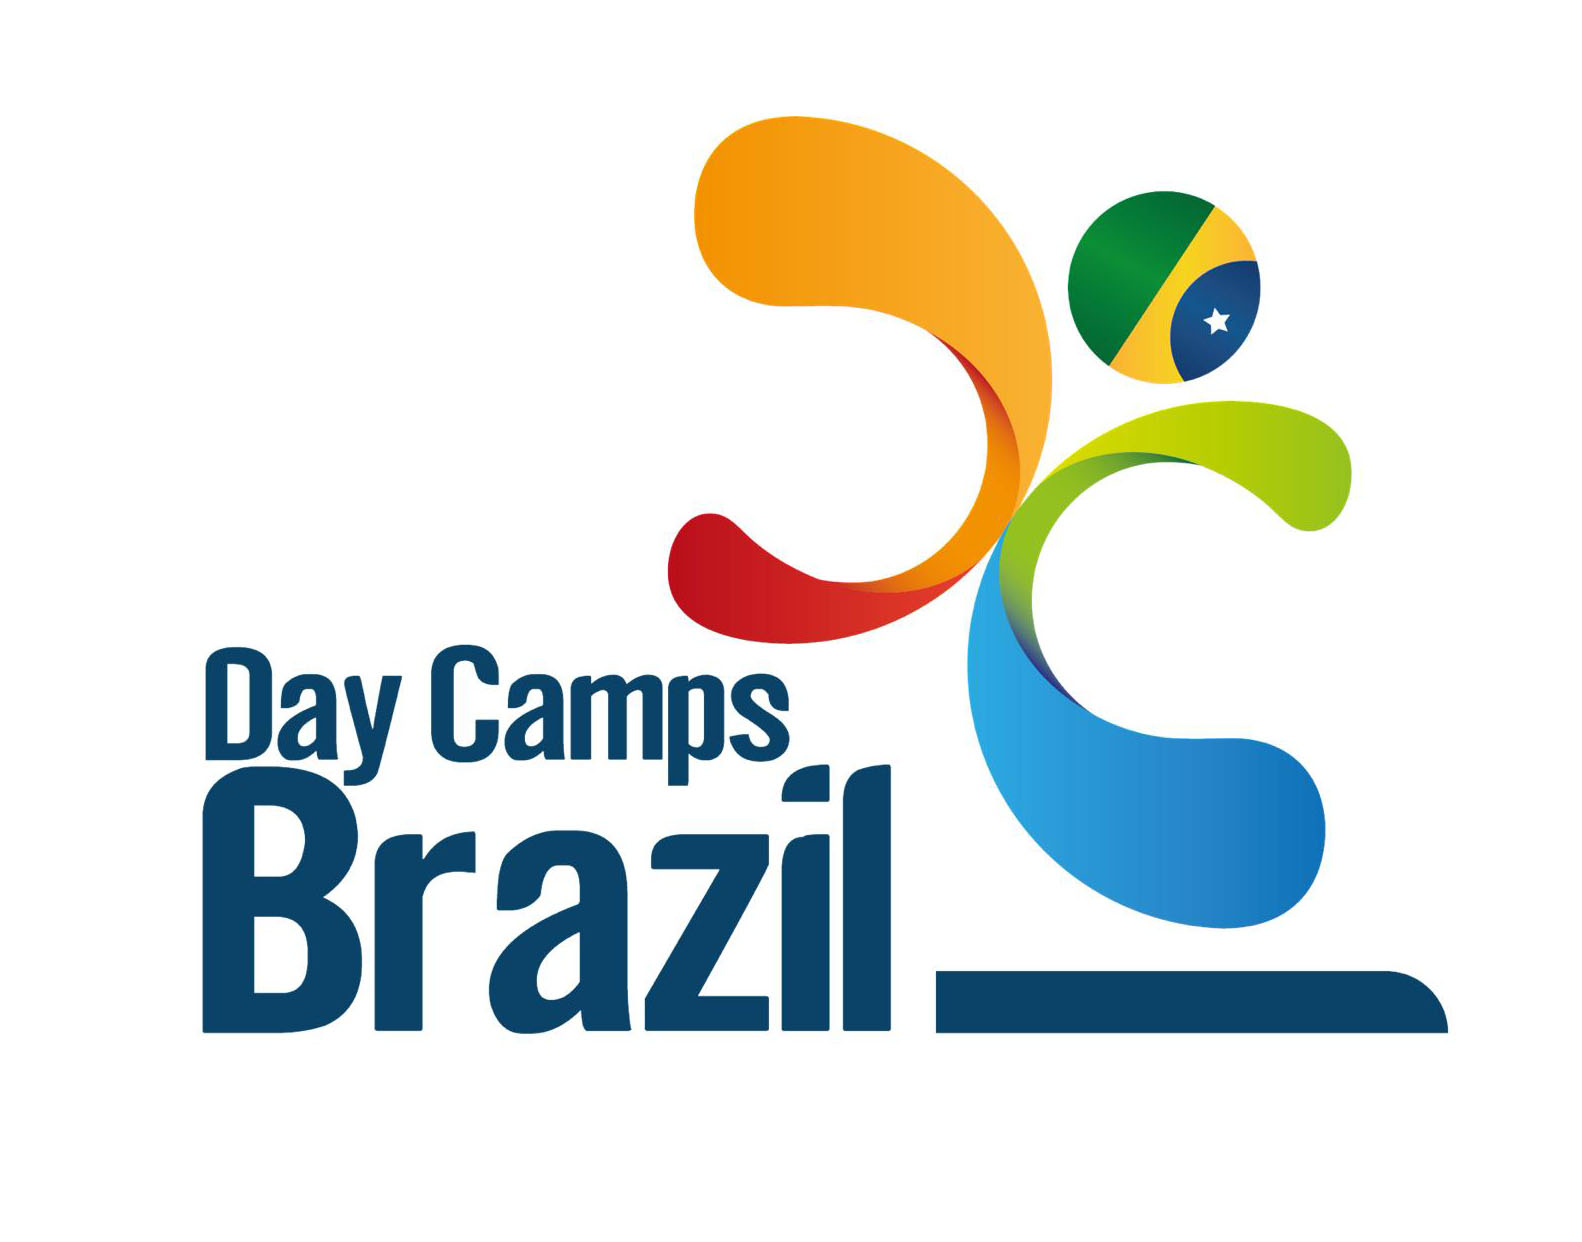 Day Camps Brazil